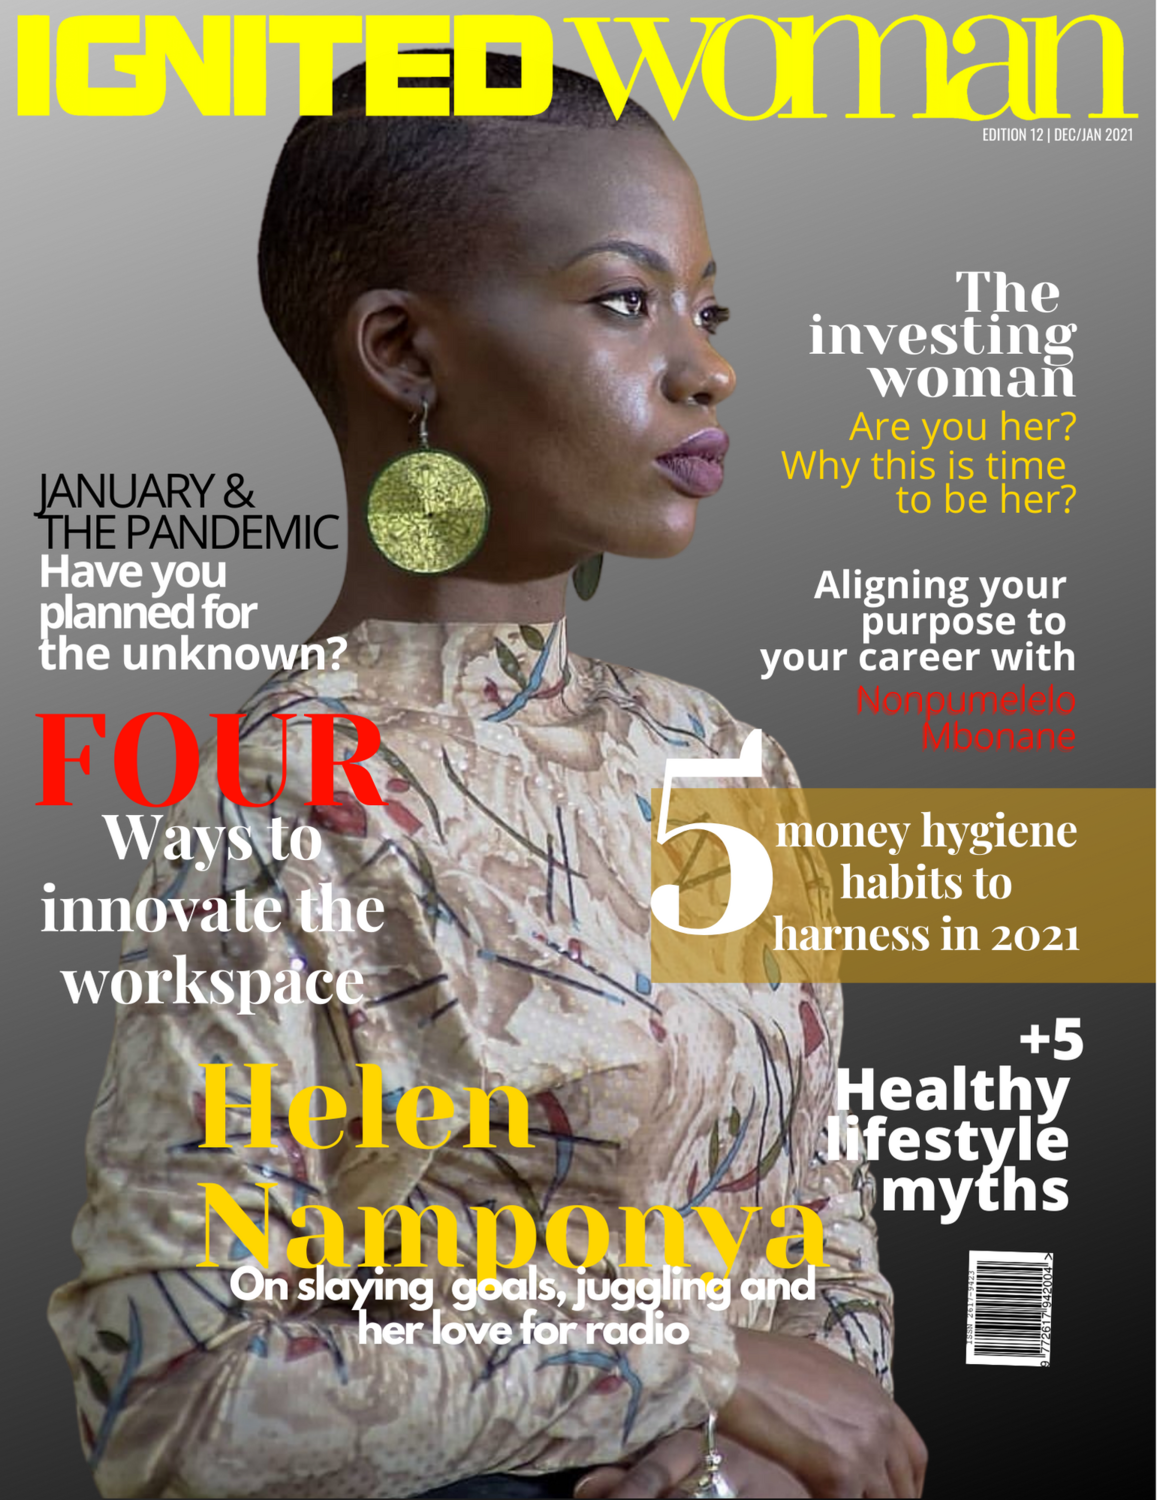 Ignited Woman Issue 12